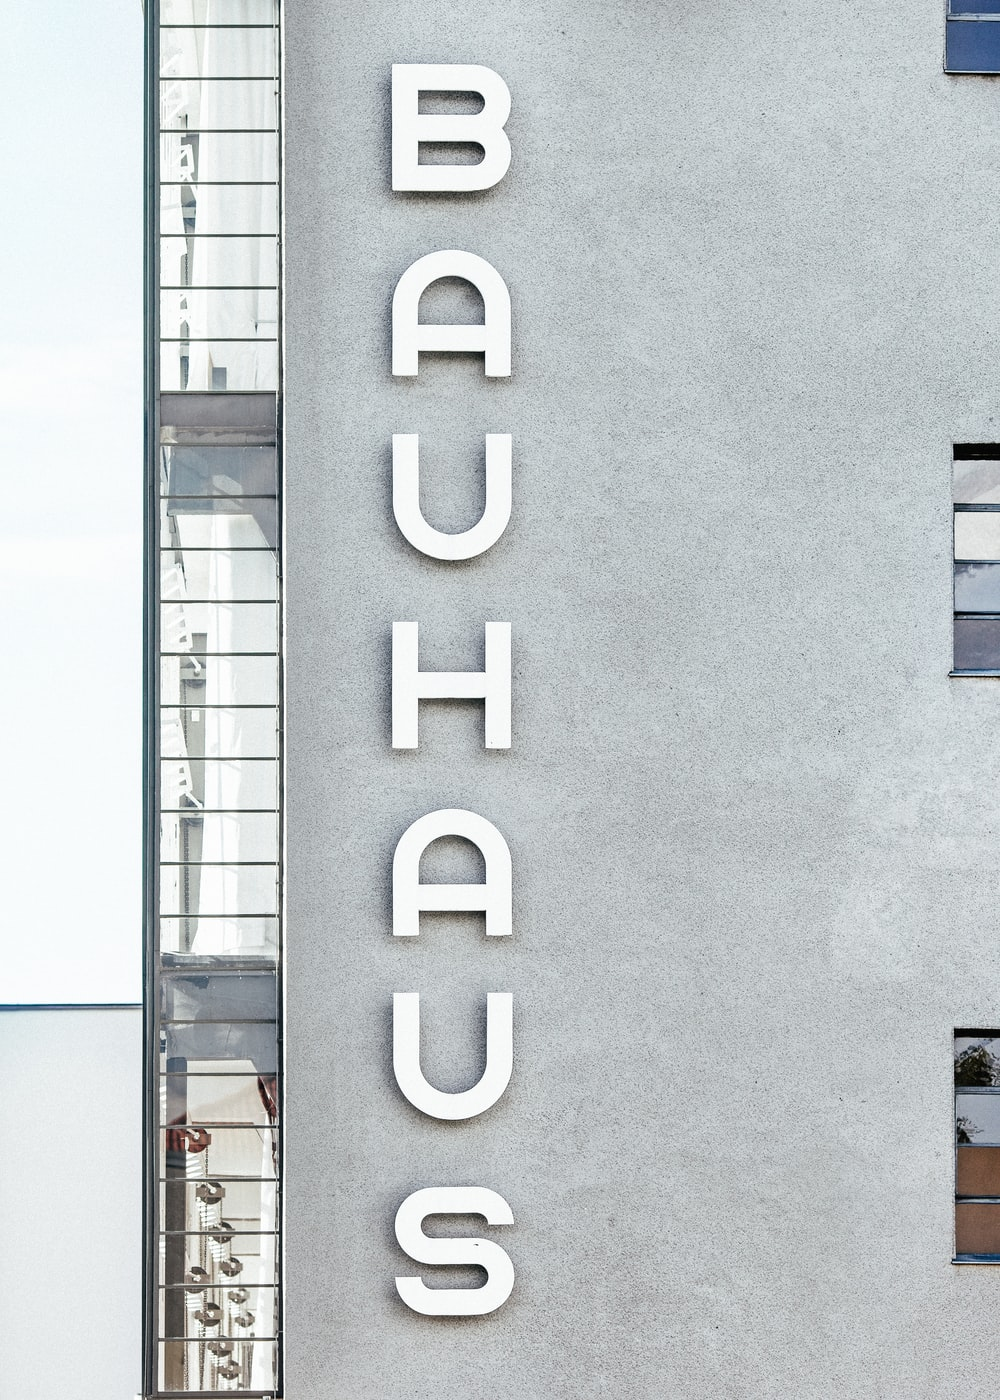 Bauhaus concrete apartment building